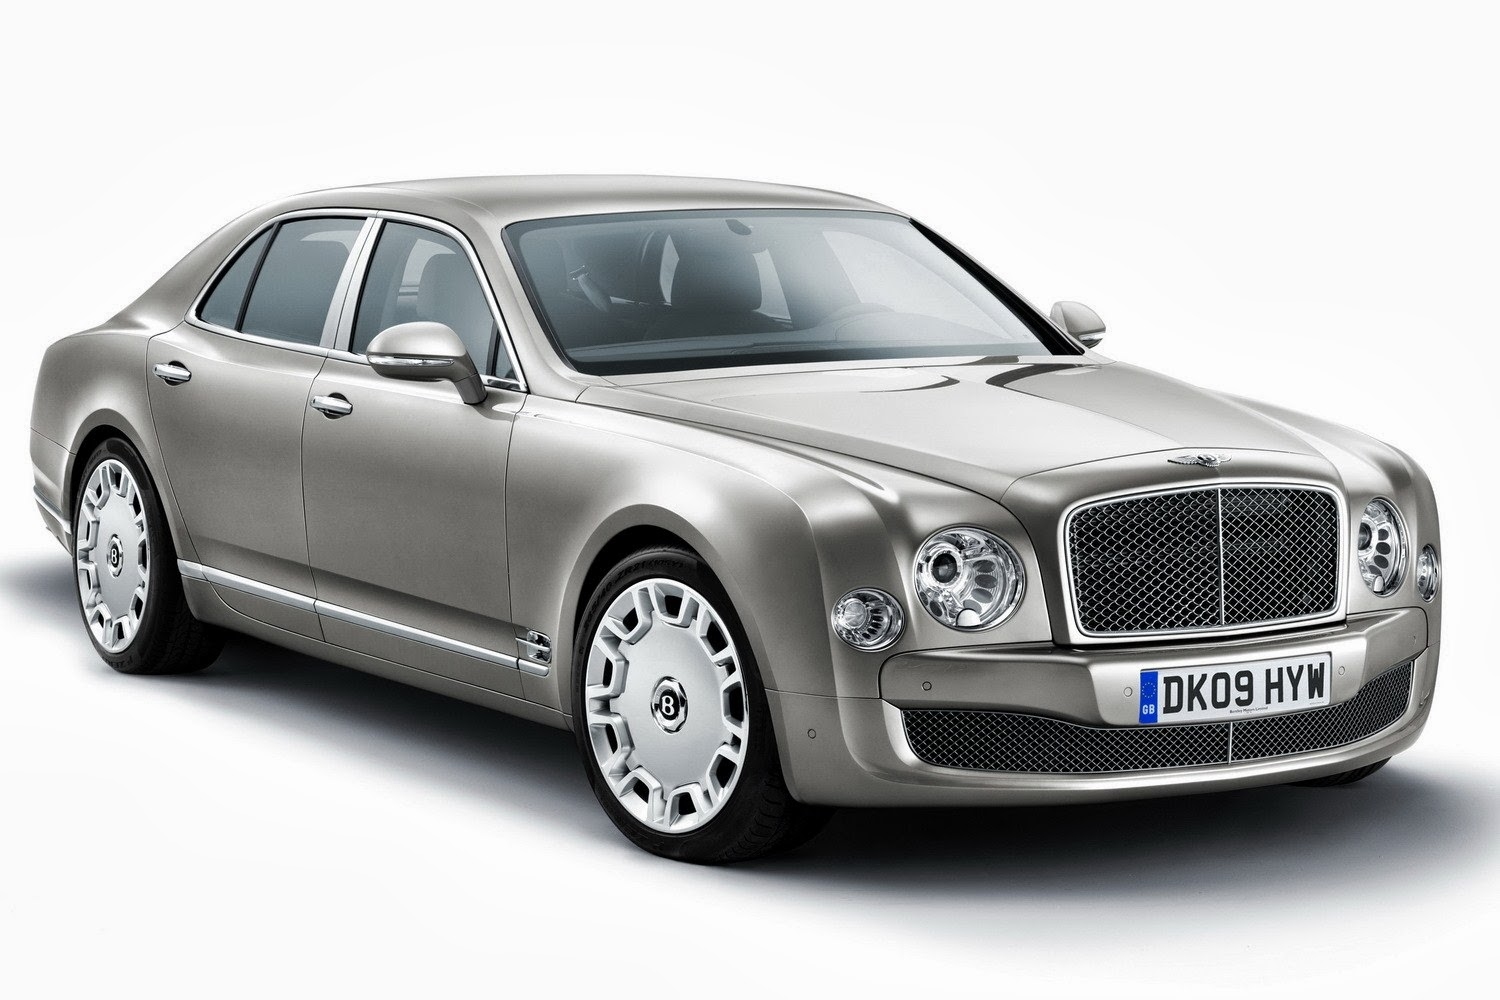 bentley mulsanne cars prices photos specification prices 2017. Black Bedroom Furniture Sets. Home Design Ideas